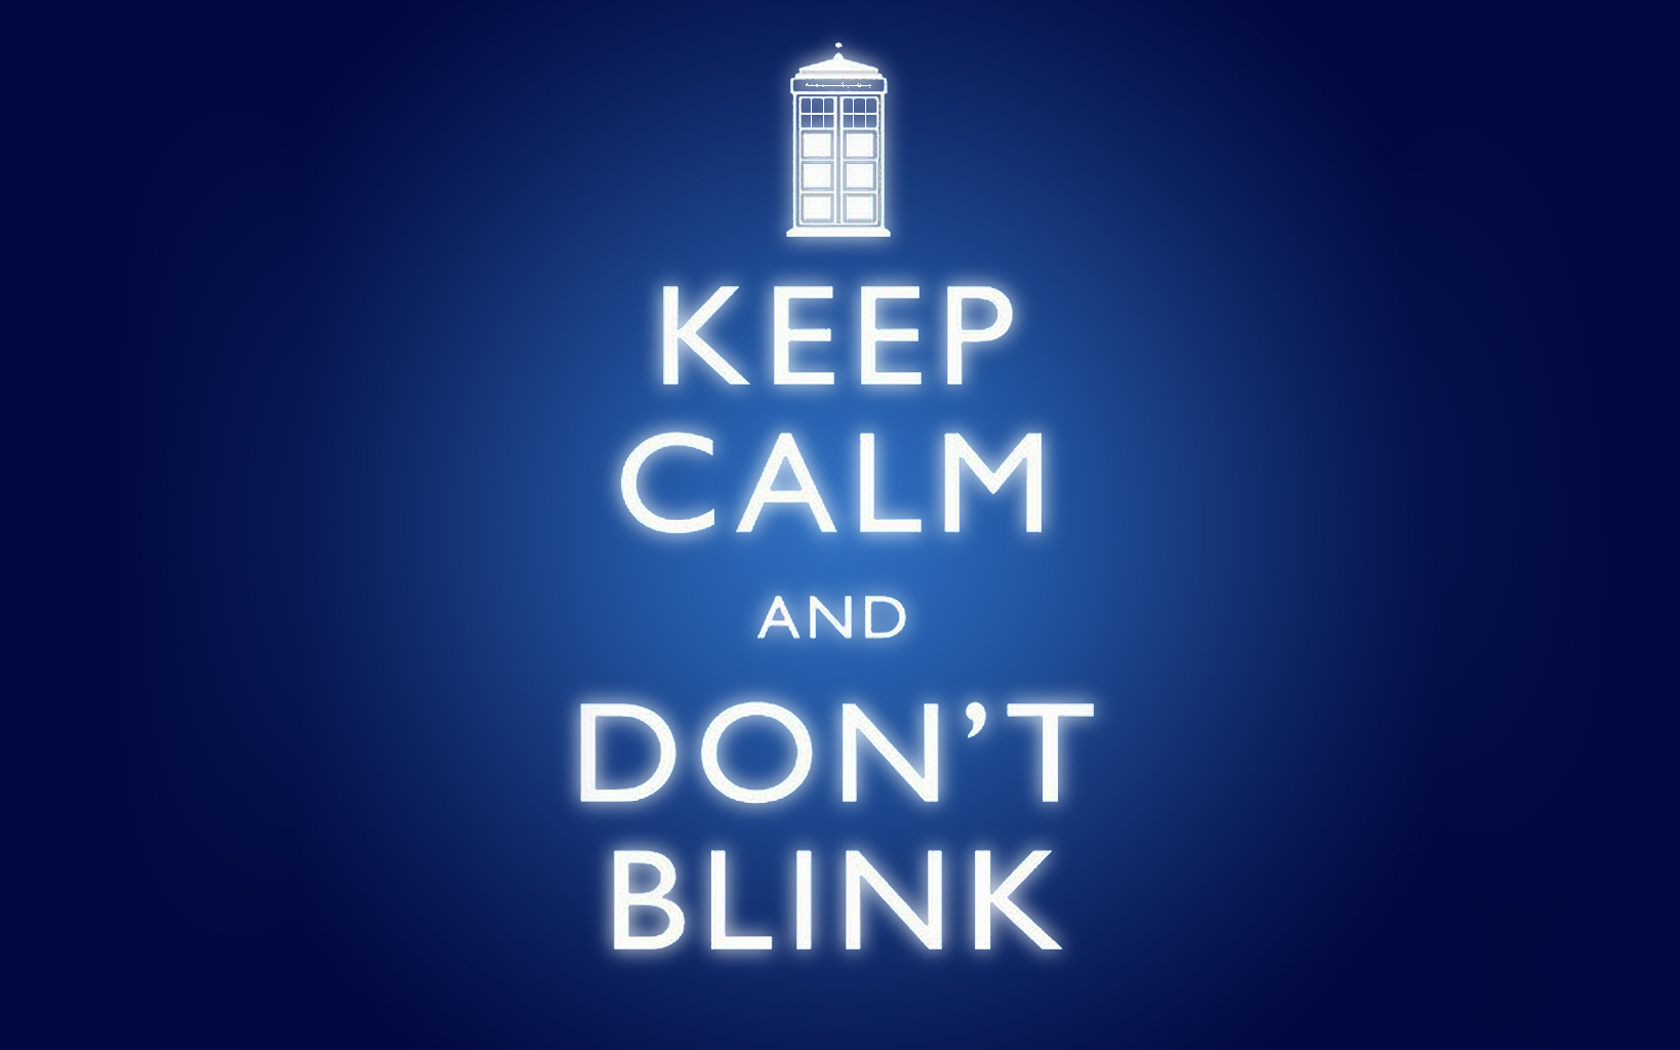 Doctor Who Keep Calm HD Wallpaper